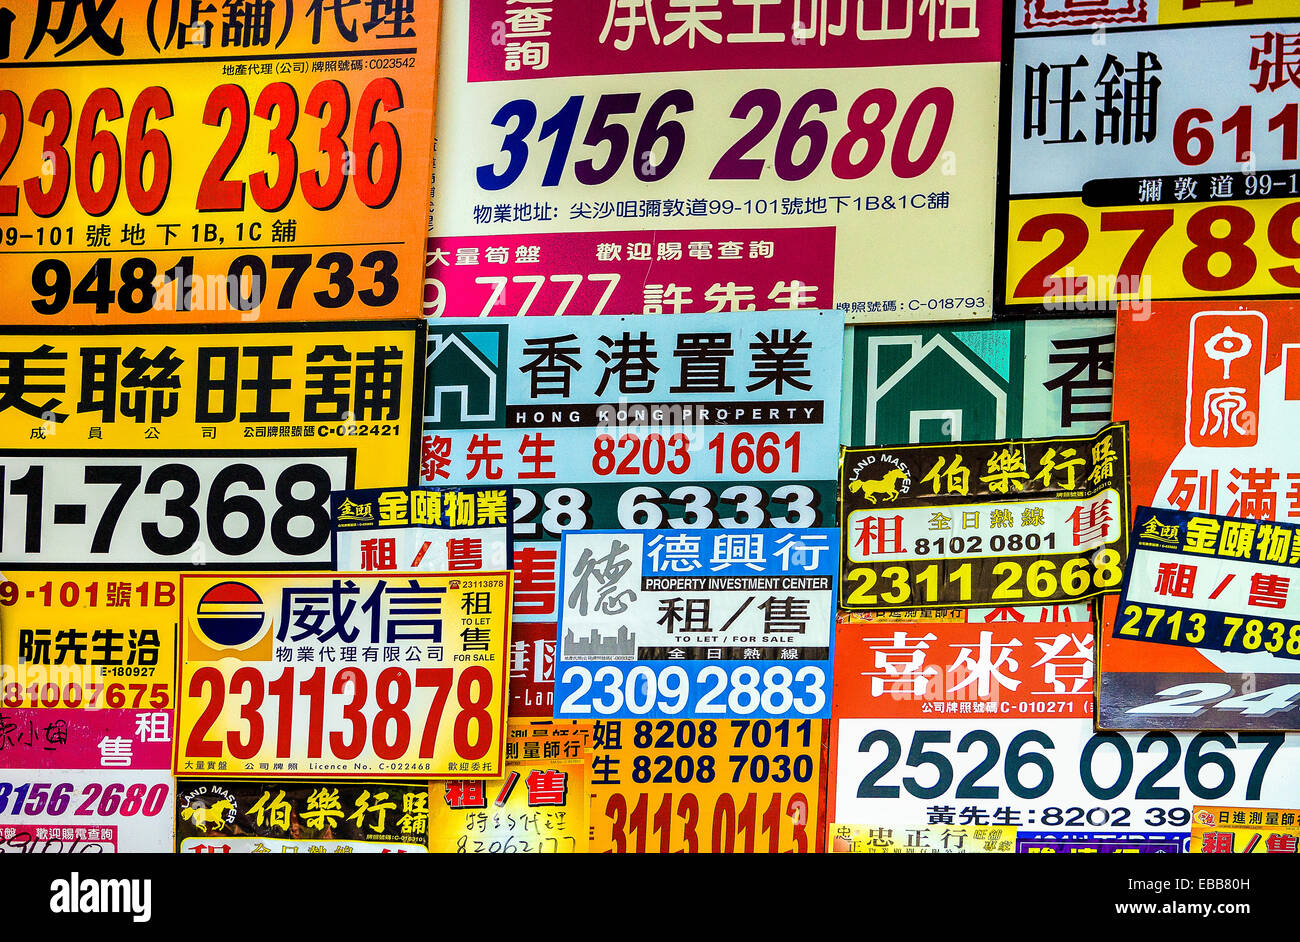 Hong Kong, advertisments with phone numbers in the old city center - Stock Image